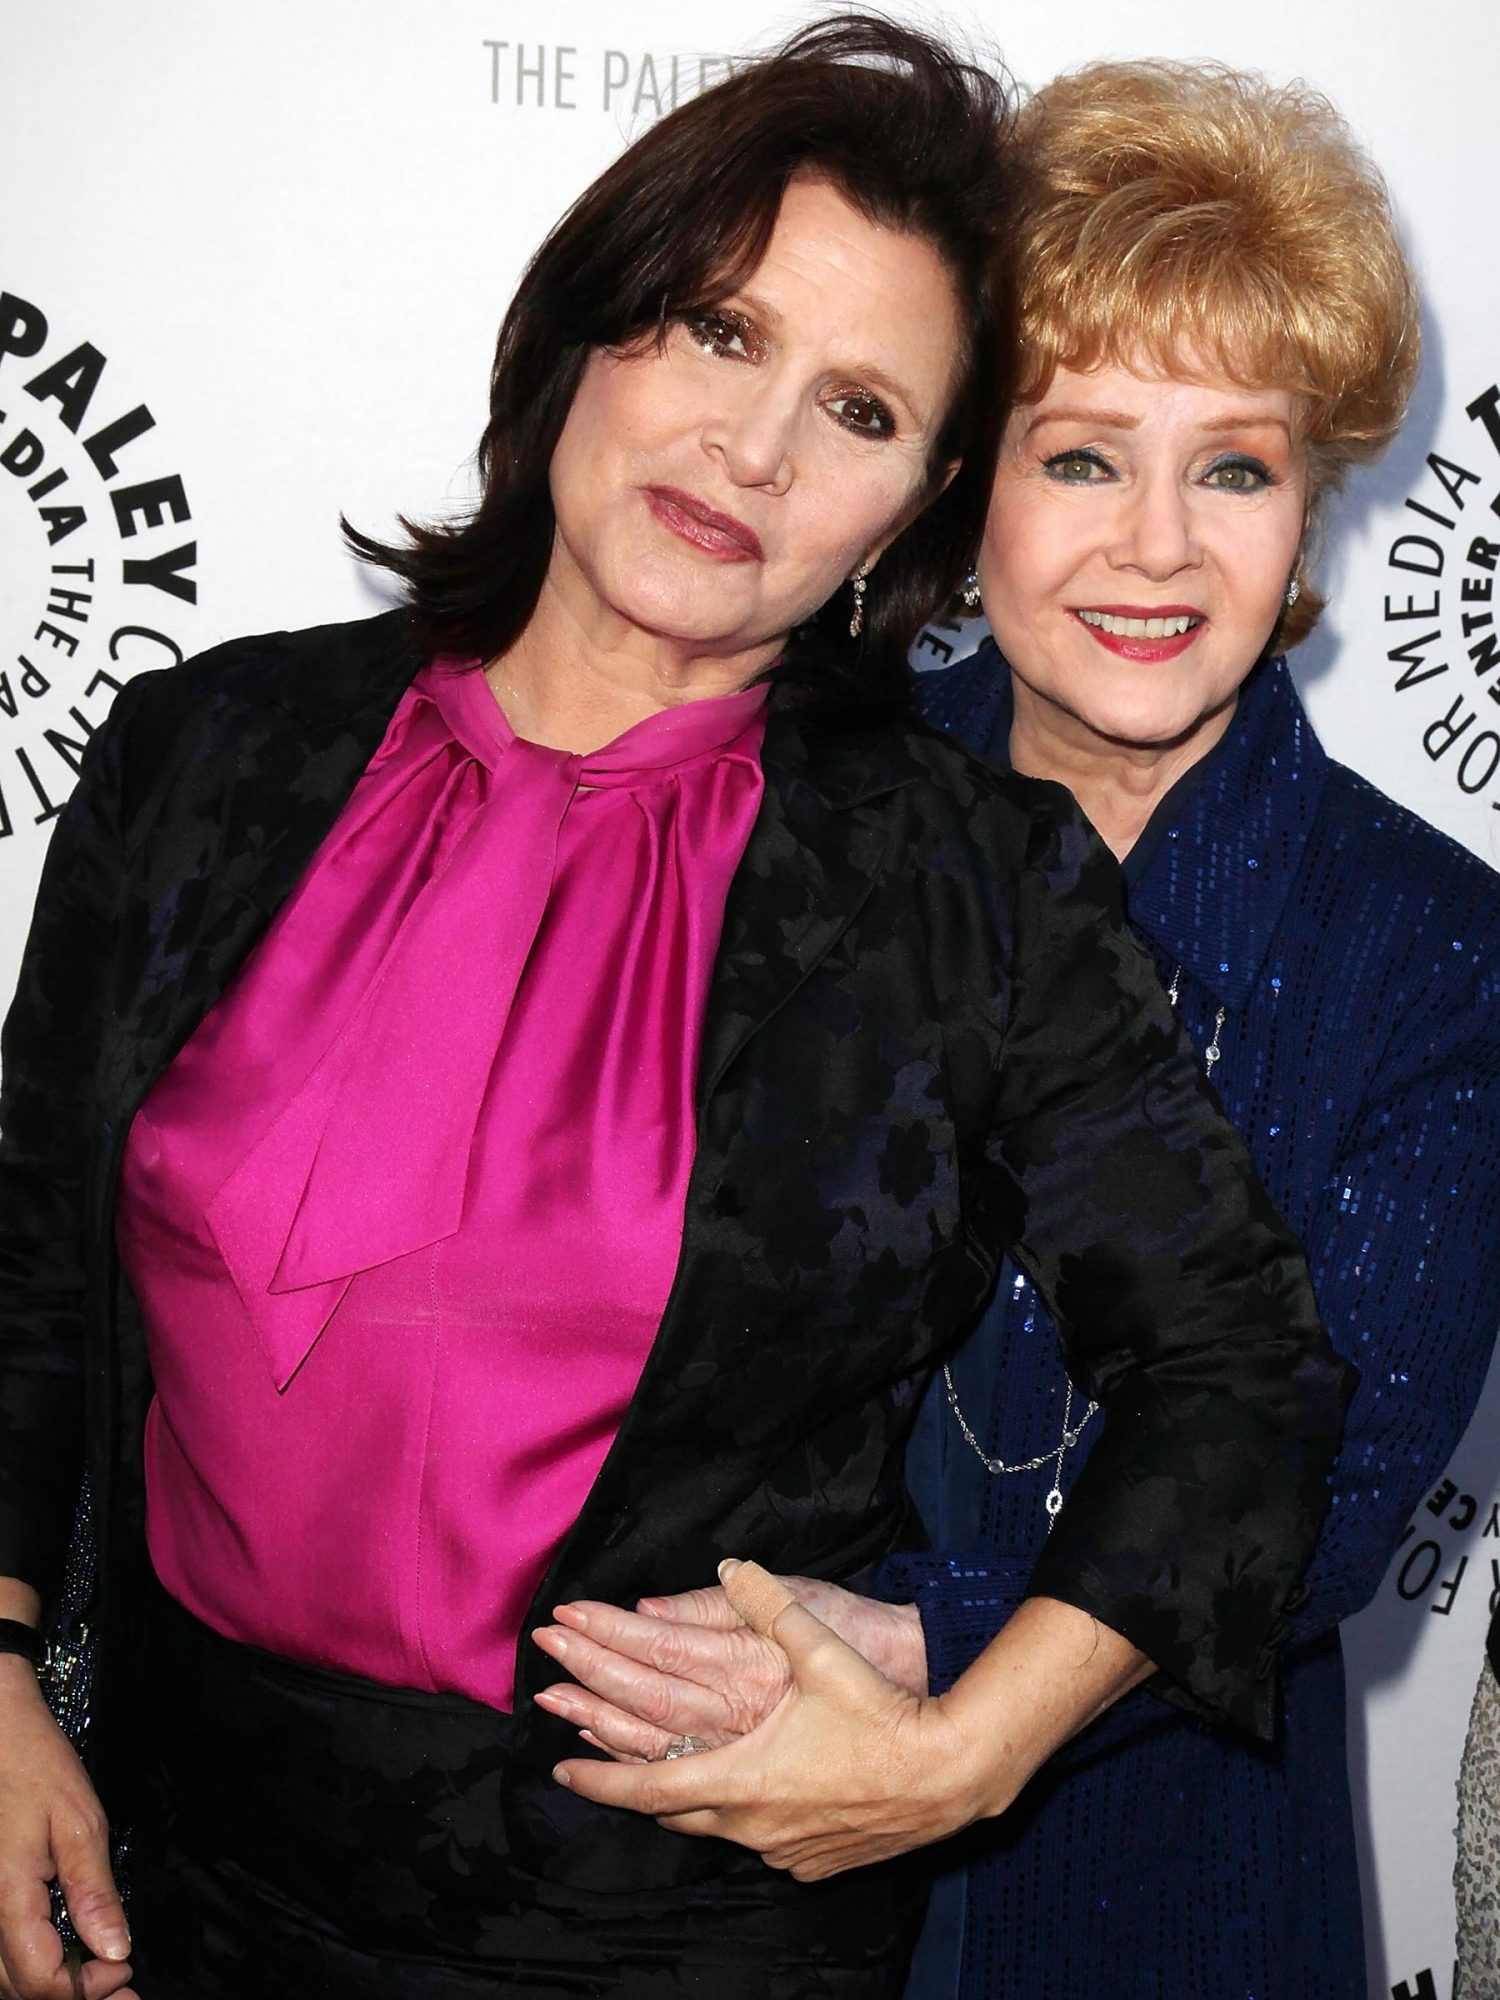 Carrie Fisher and Debbie Reynolds at the Paley Center in Beverly Hills, 2011